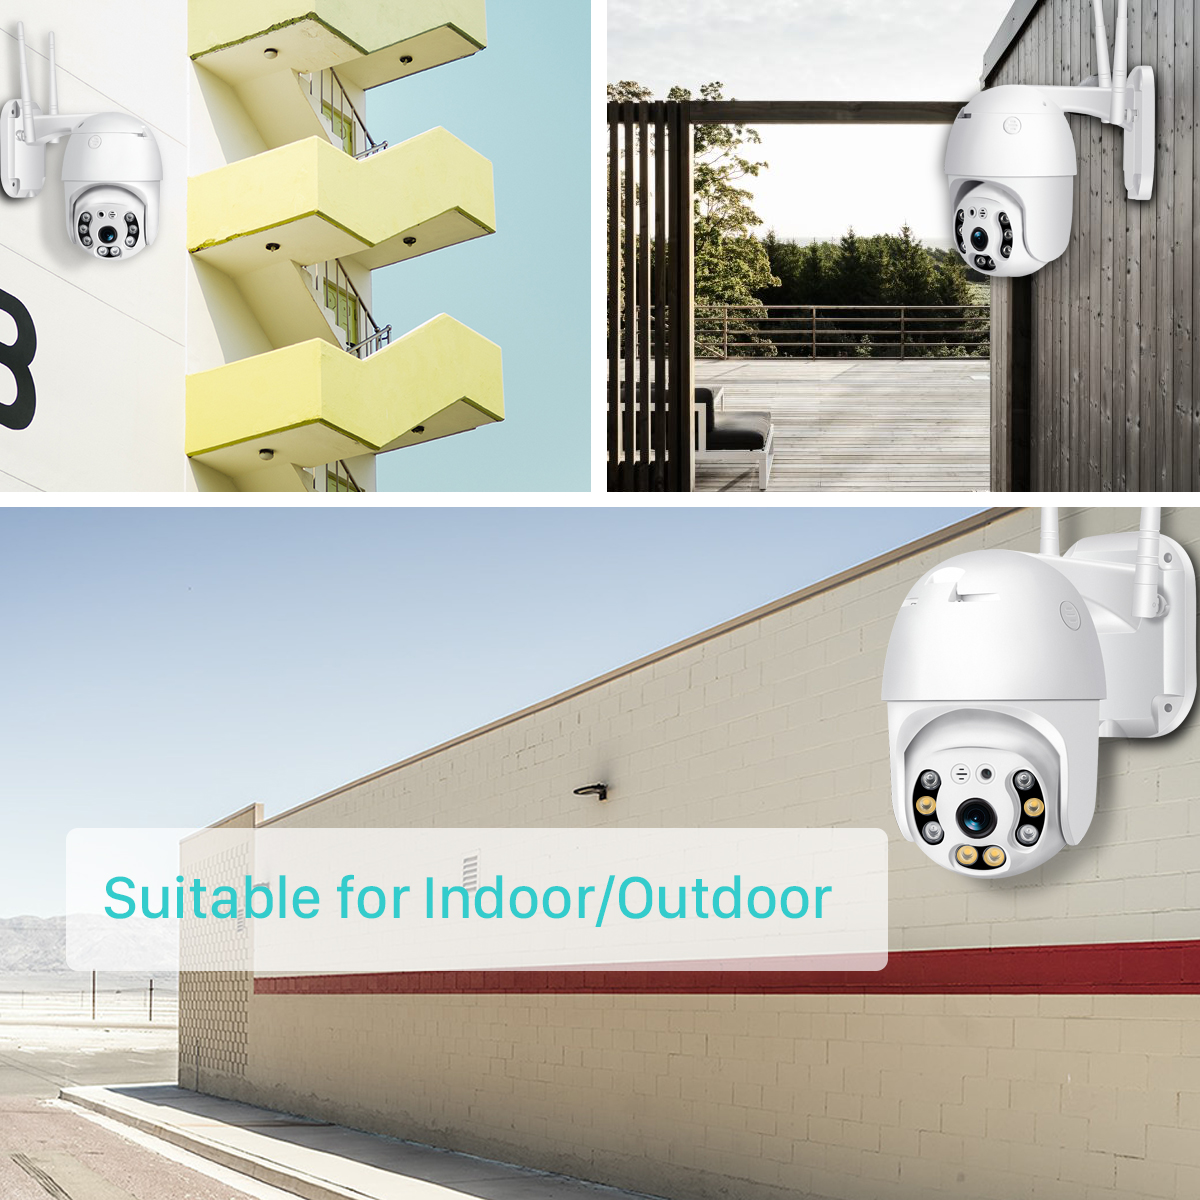 H366ed63eaf774c4c96cdc5cde2864ad2W BESDER 1080P Outdoor Speed Dome Wifi Camera 2MP H.265 Audio PTZ Wireless Camera Cloud-SD Slot ONVIF Home Surveillance IP Camera